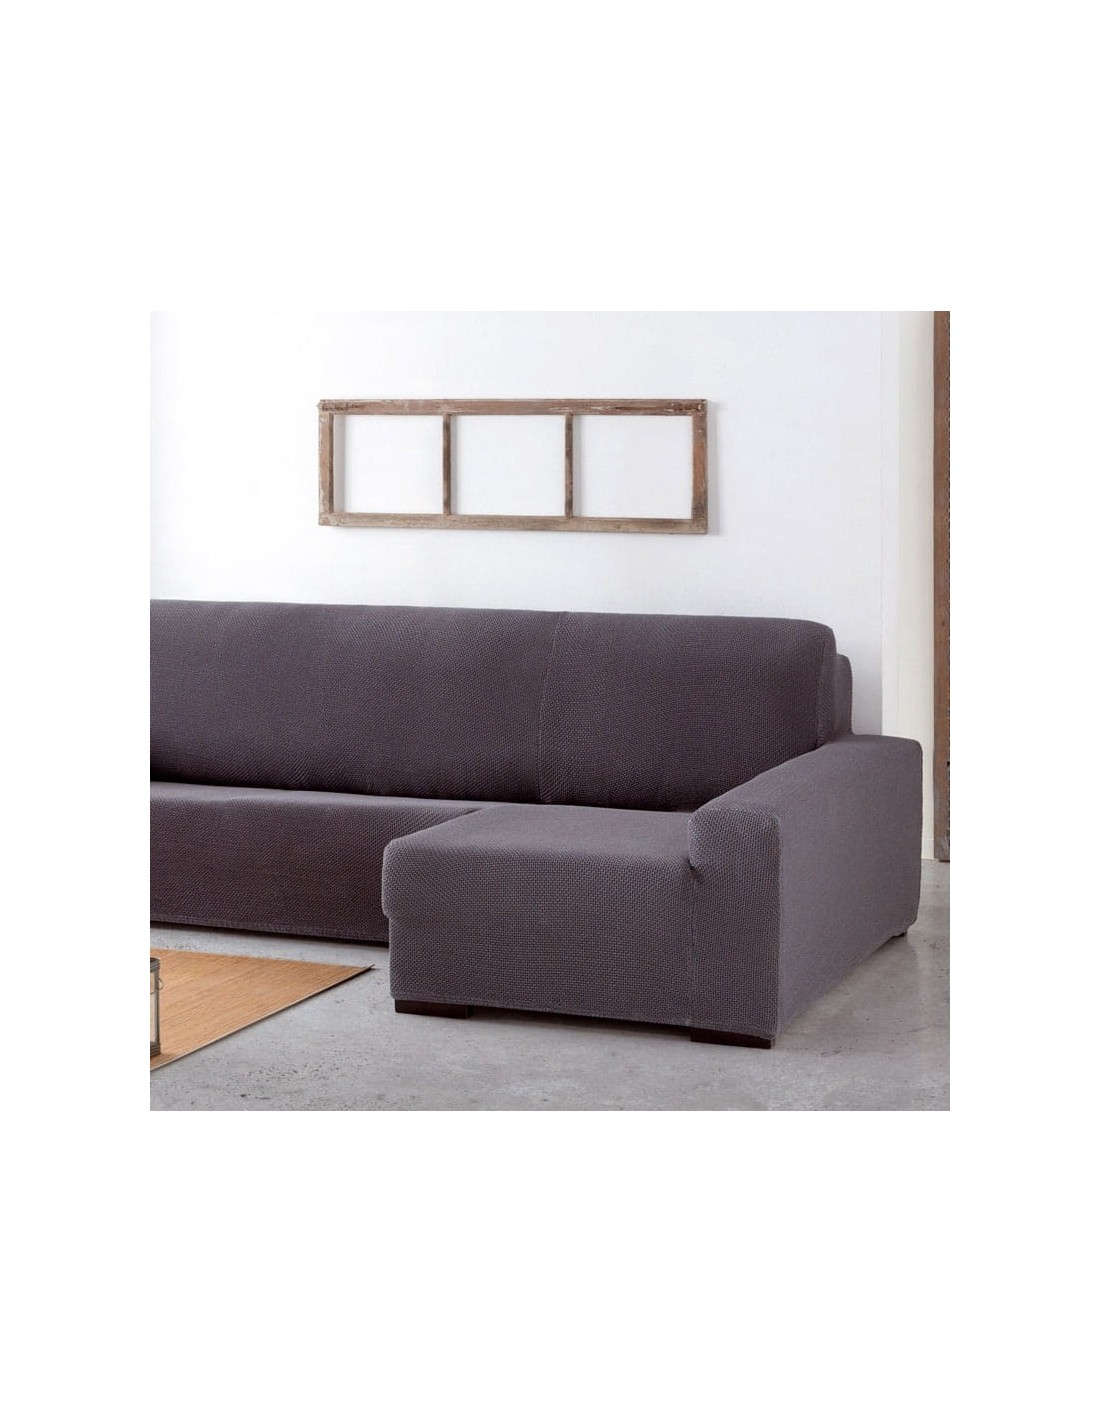 Ikea fundas de sofa latest fundas de sofa ikea linda ikea nyhamn futon with pocket spring Funda sofa ikea